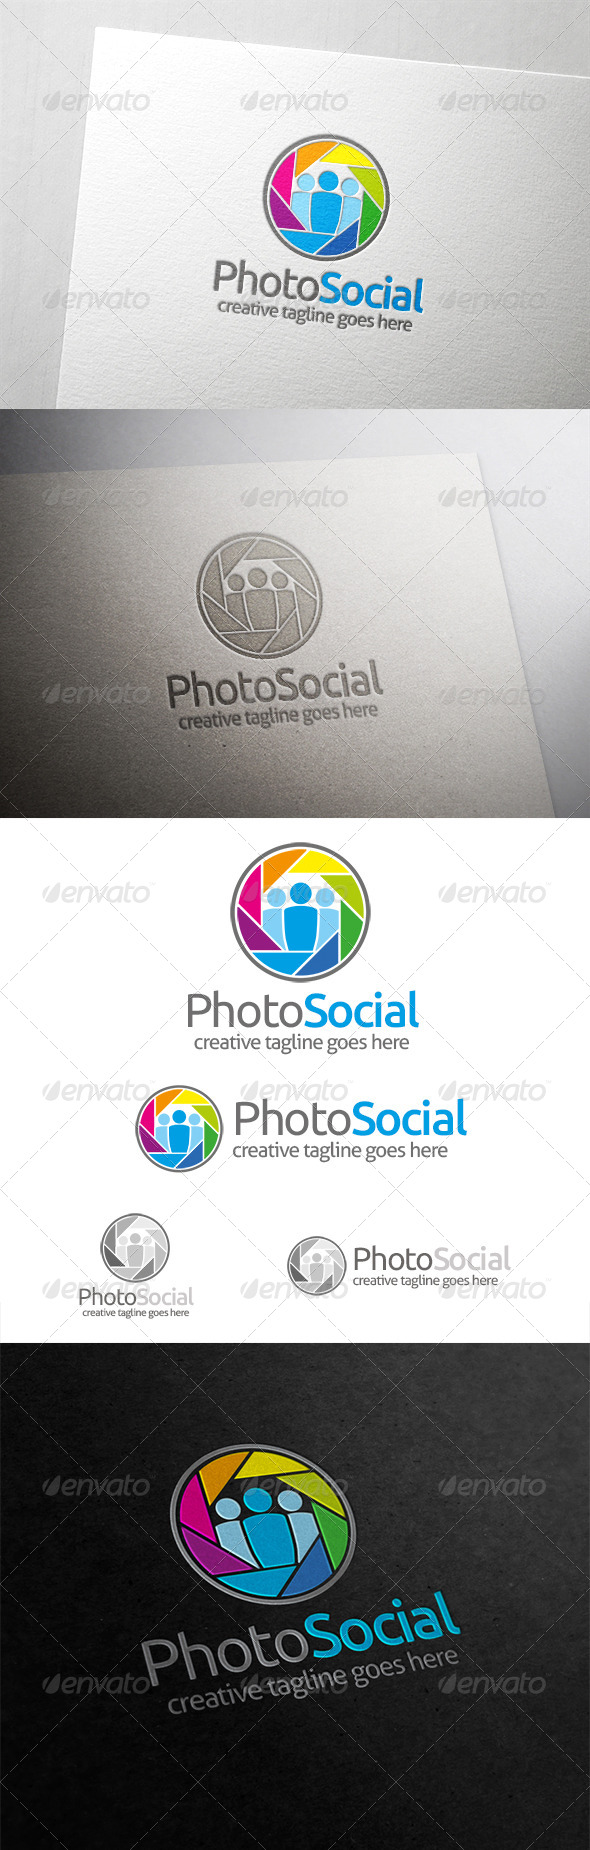 GraphicRiver Photo Social Logo 6276345